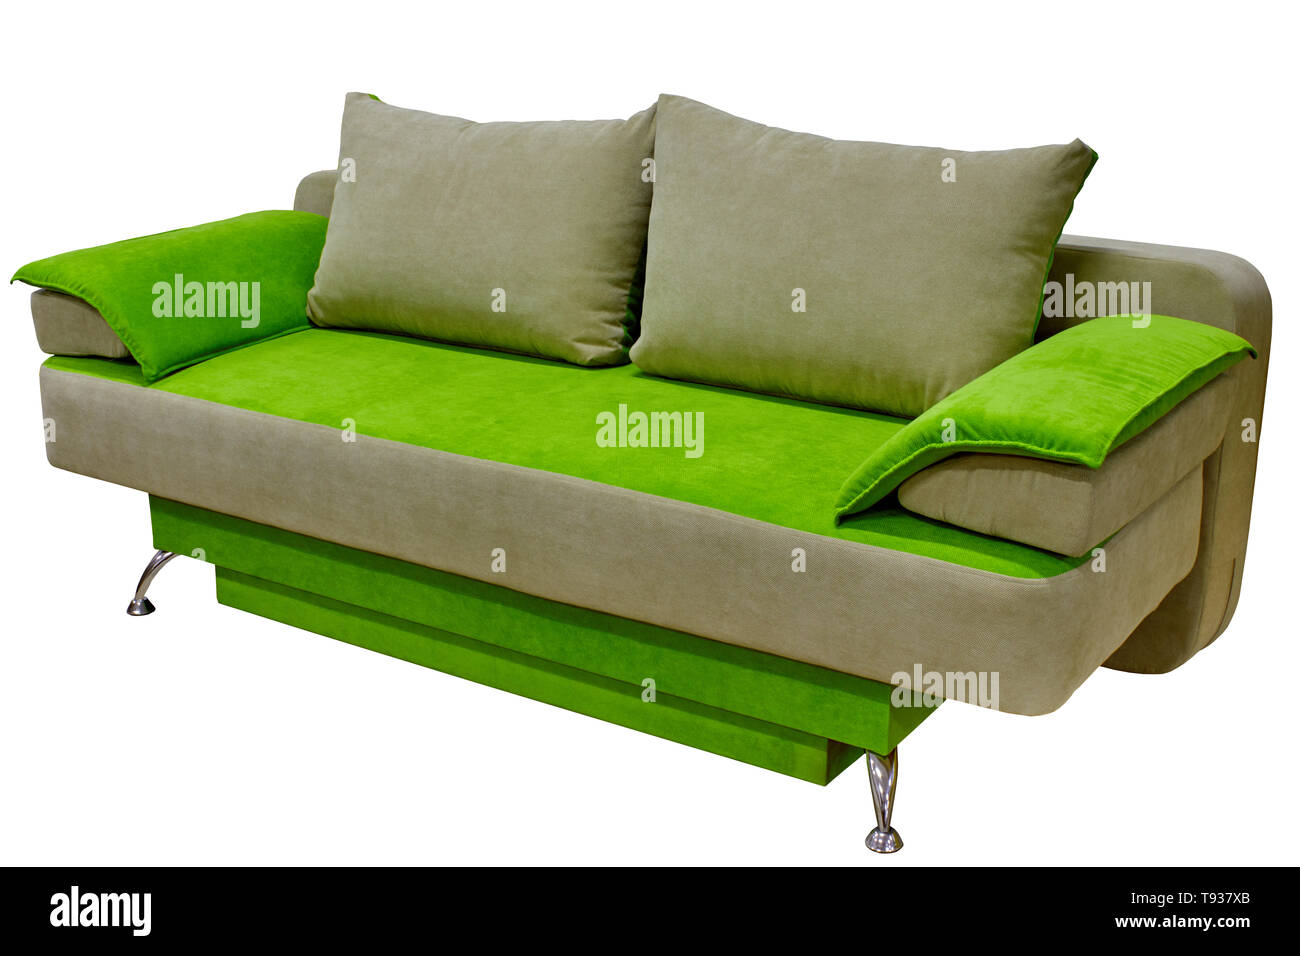 modern cozy fabric sofa two-tone beige and bright green without armrests on a white background - Stock Image